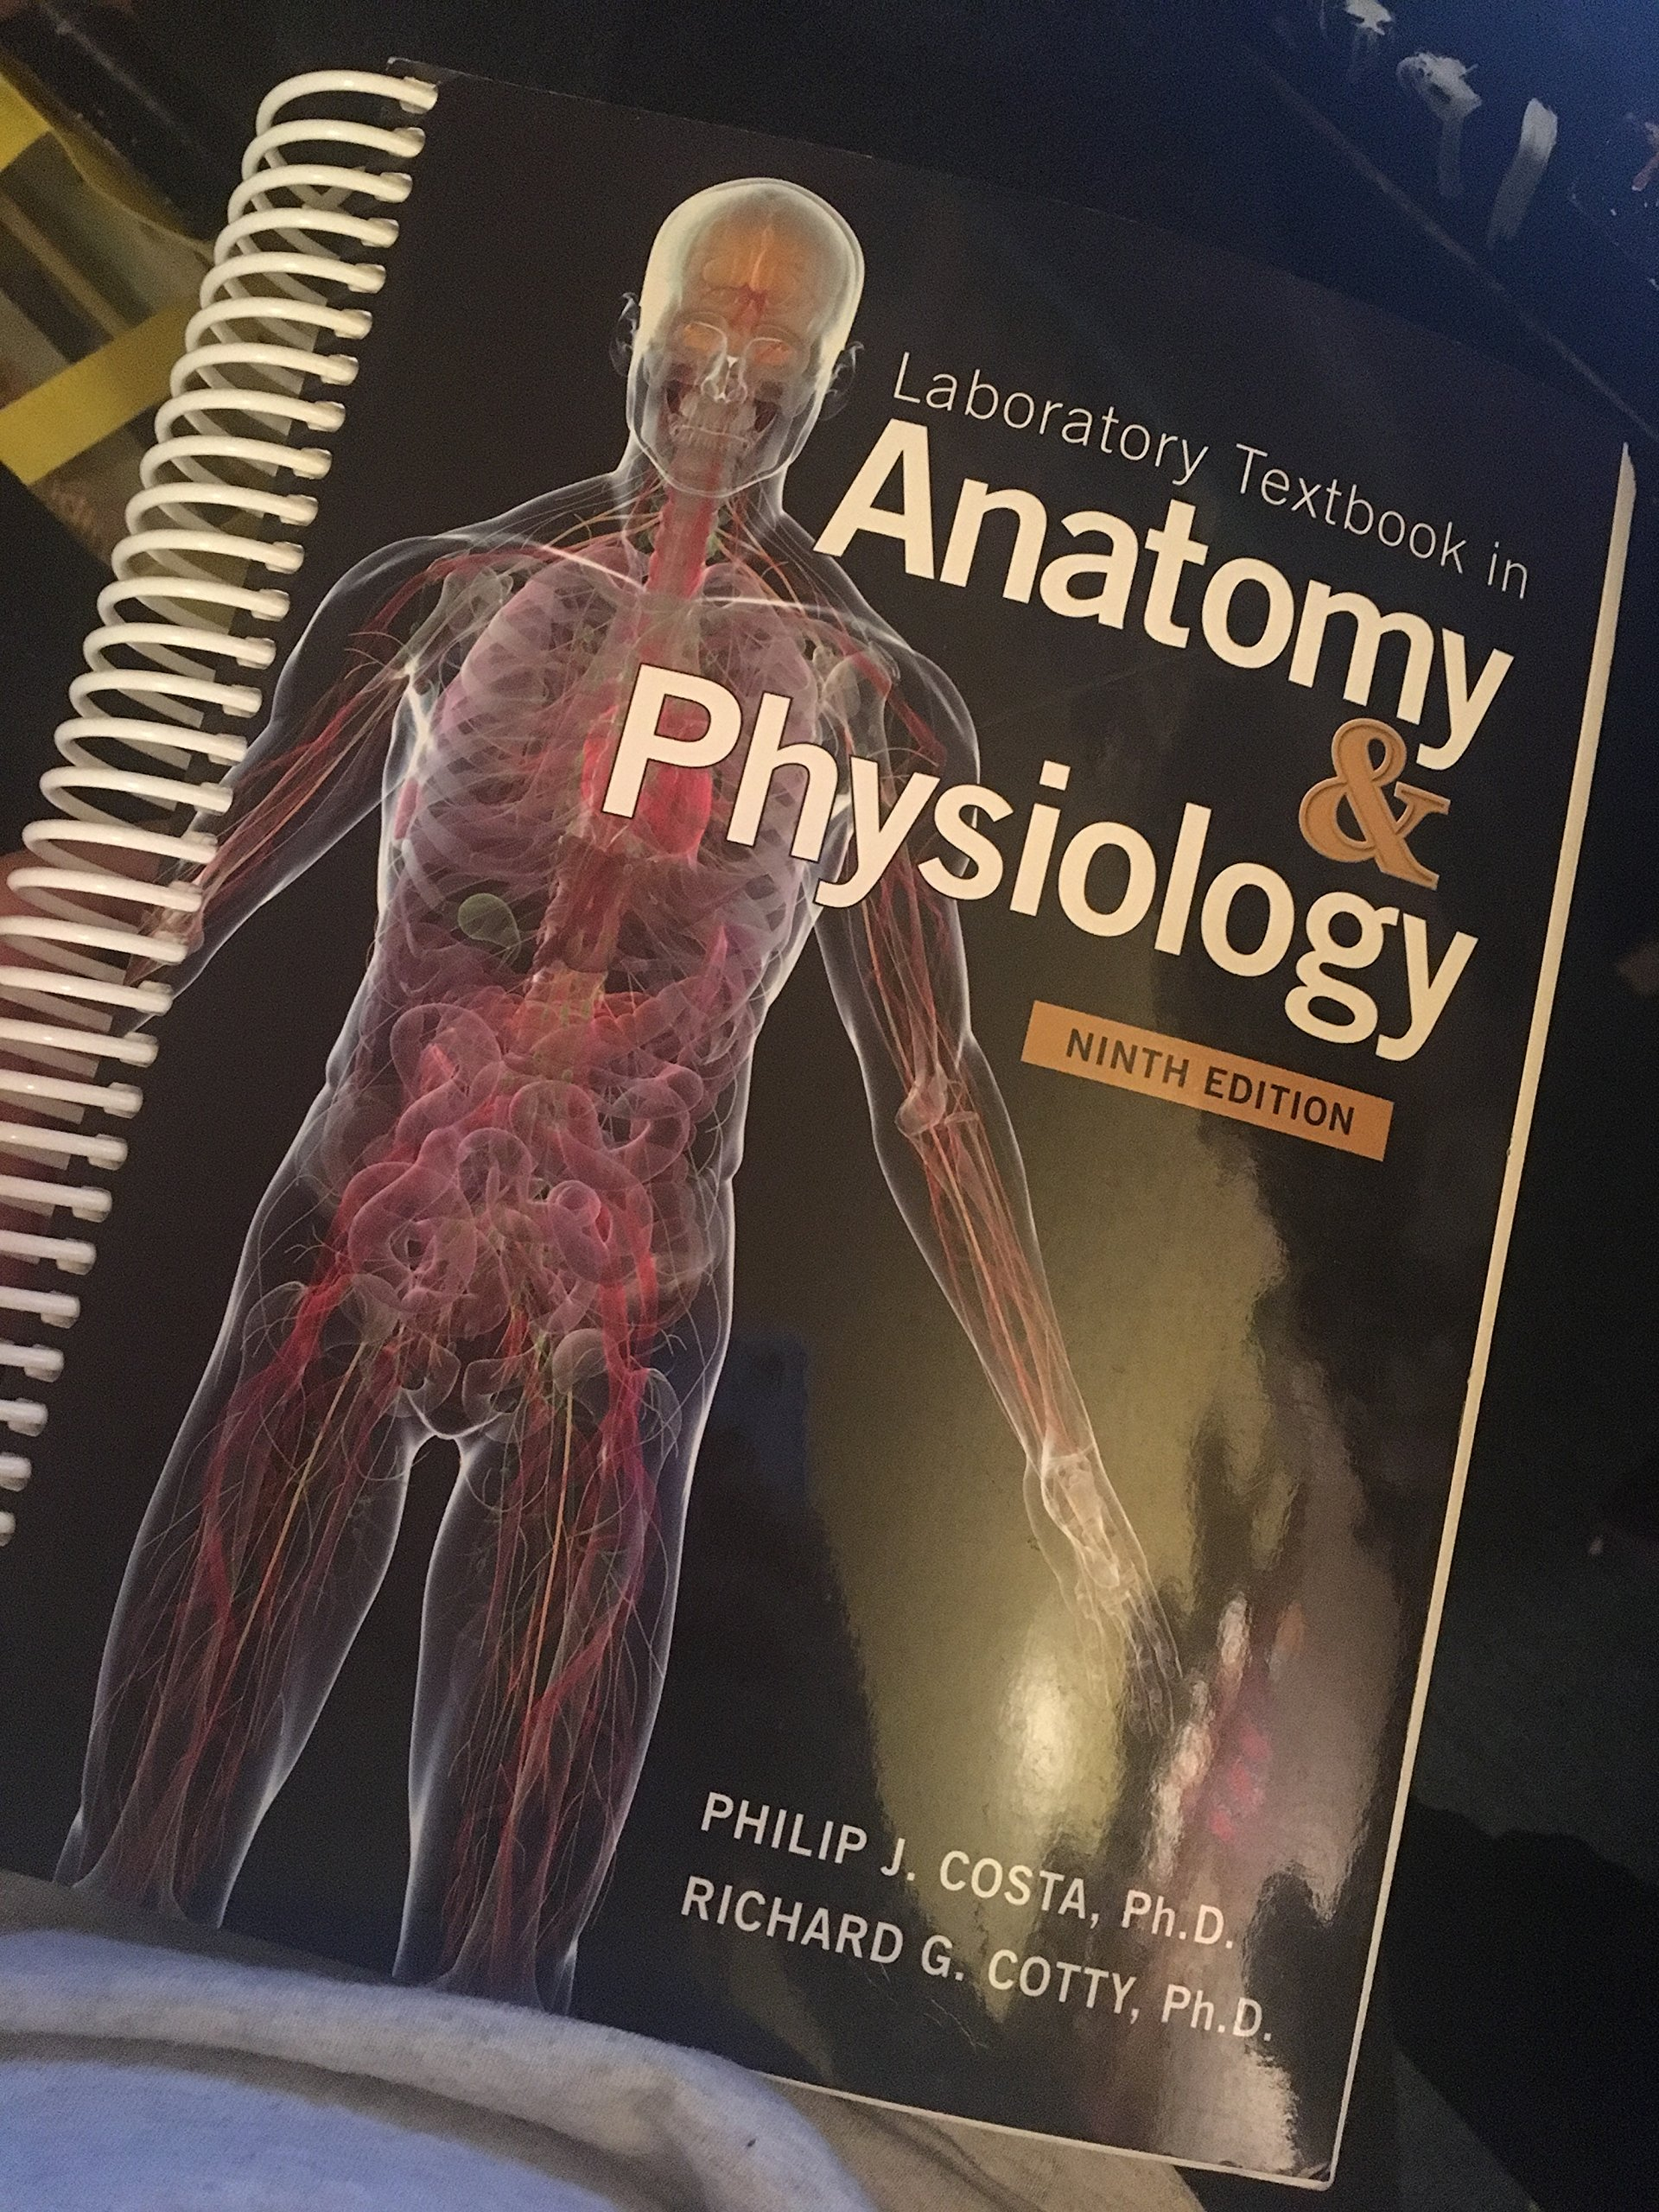 Laboratory Textbook in Anatomy & Physiology 9th Ed.: Philip J. Costa ...